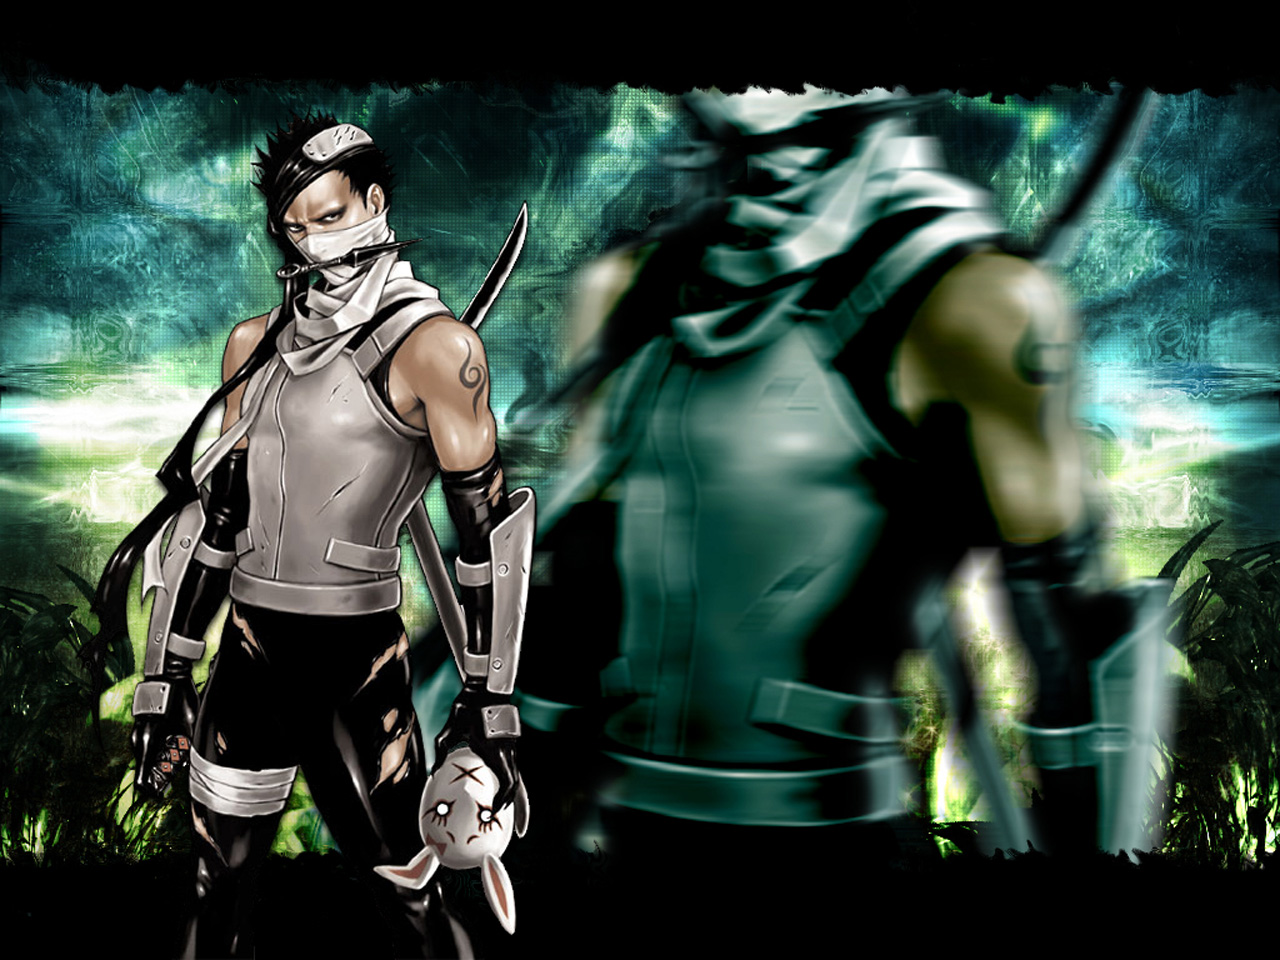 Anime Wallpaper: Zabuza with Sword - Anime Wallpaper and Cosplays